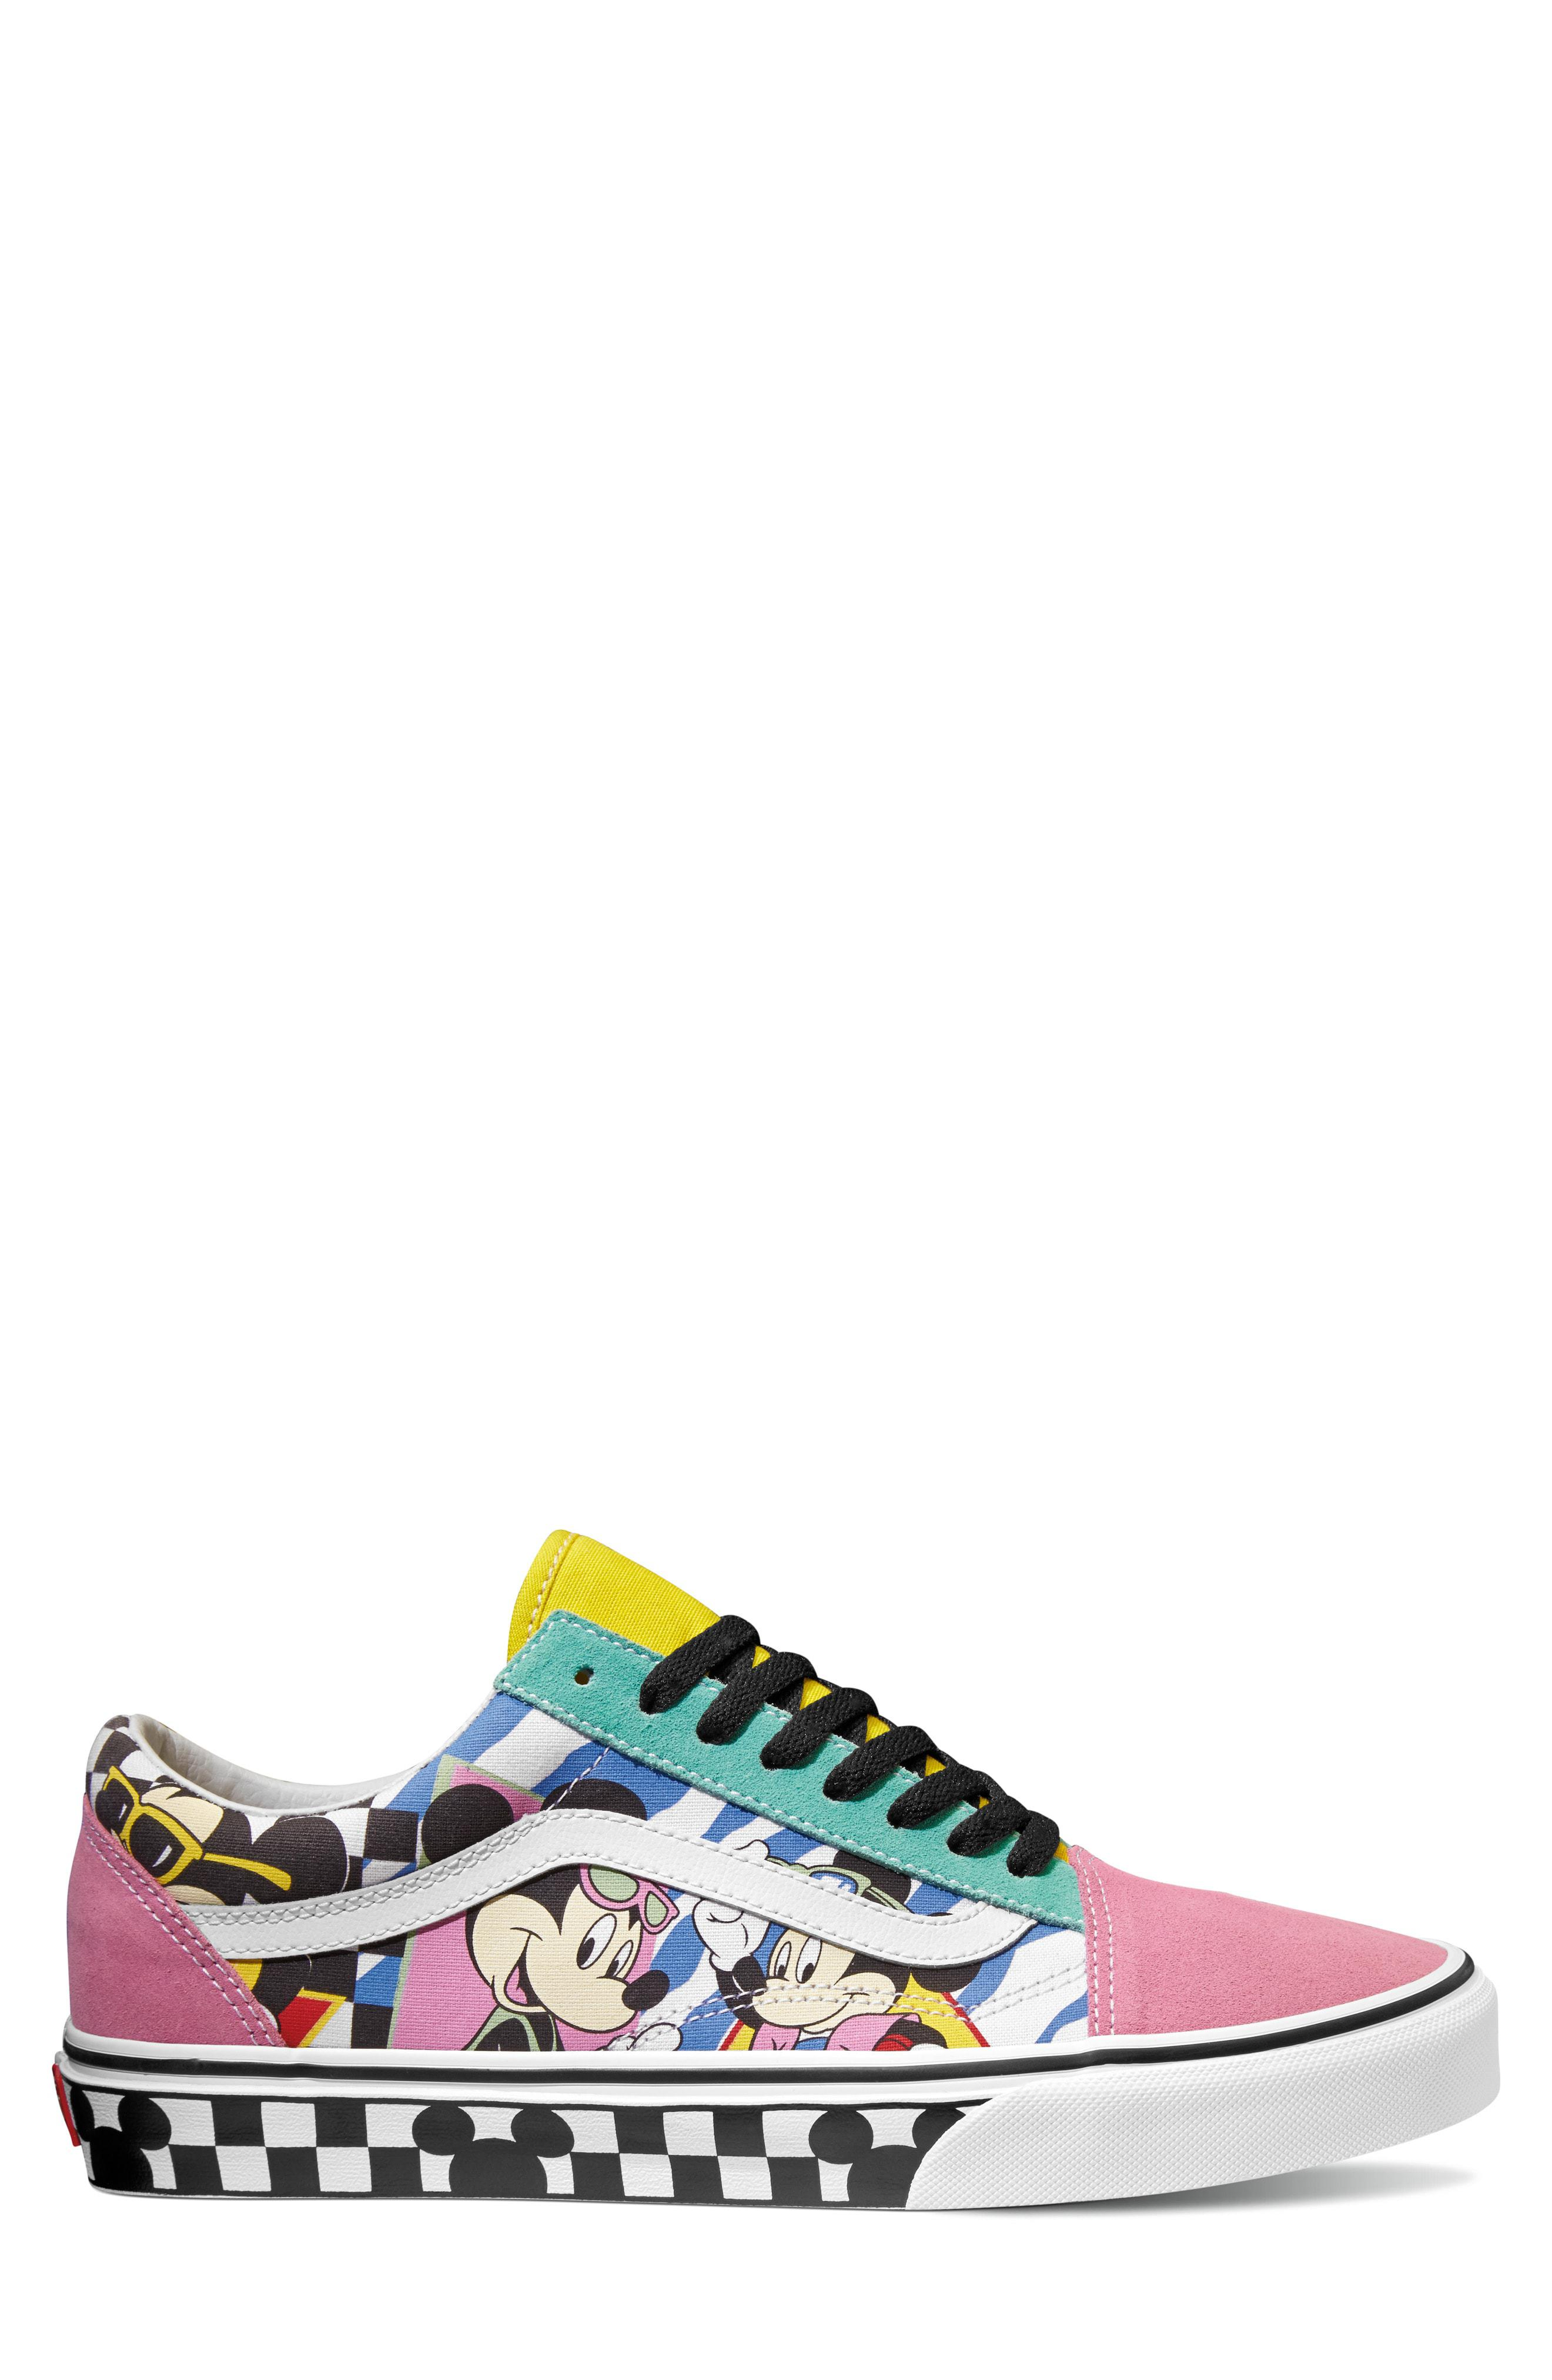 9dc0f02a6f Lyst - Vans X Disney Old Skool Sneaker for Men